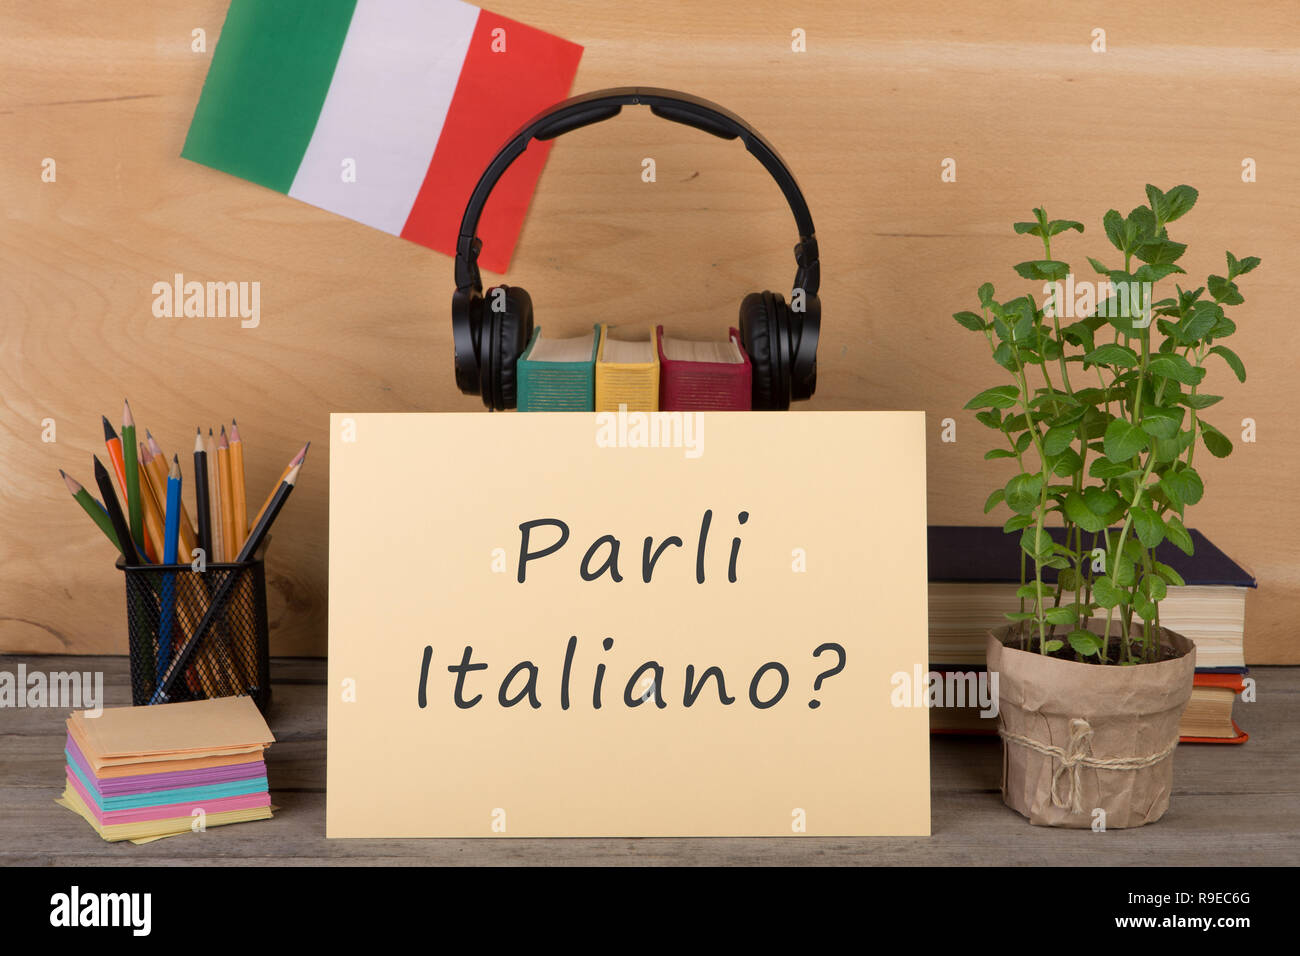 Learning languages concept - paper with text 'parli italiano?', flag of the Italia, books, headphones, pencils on wooden background - Stock Image